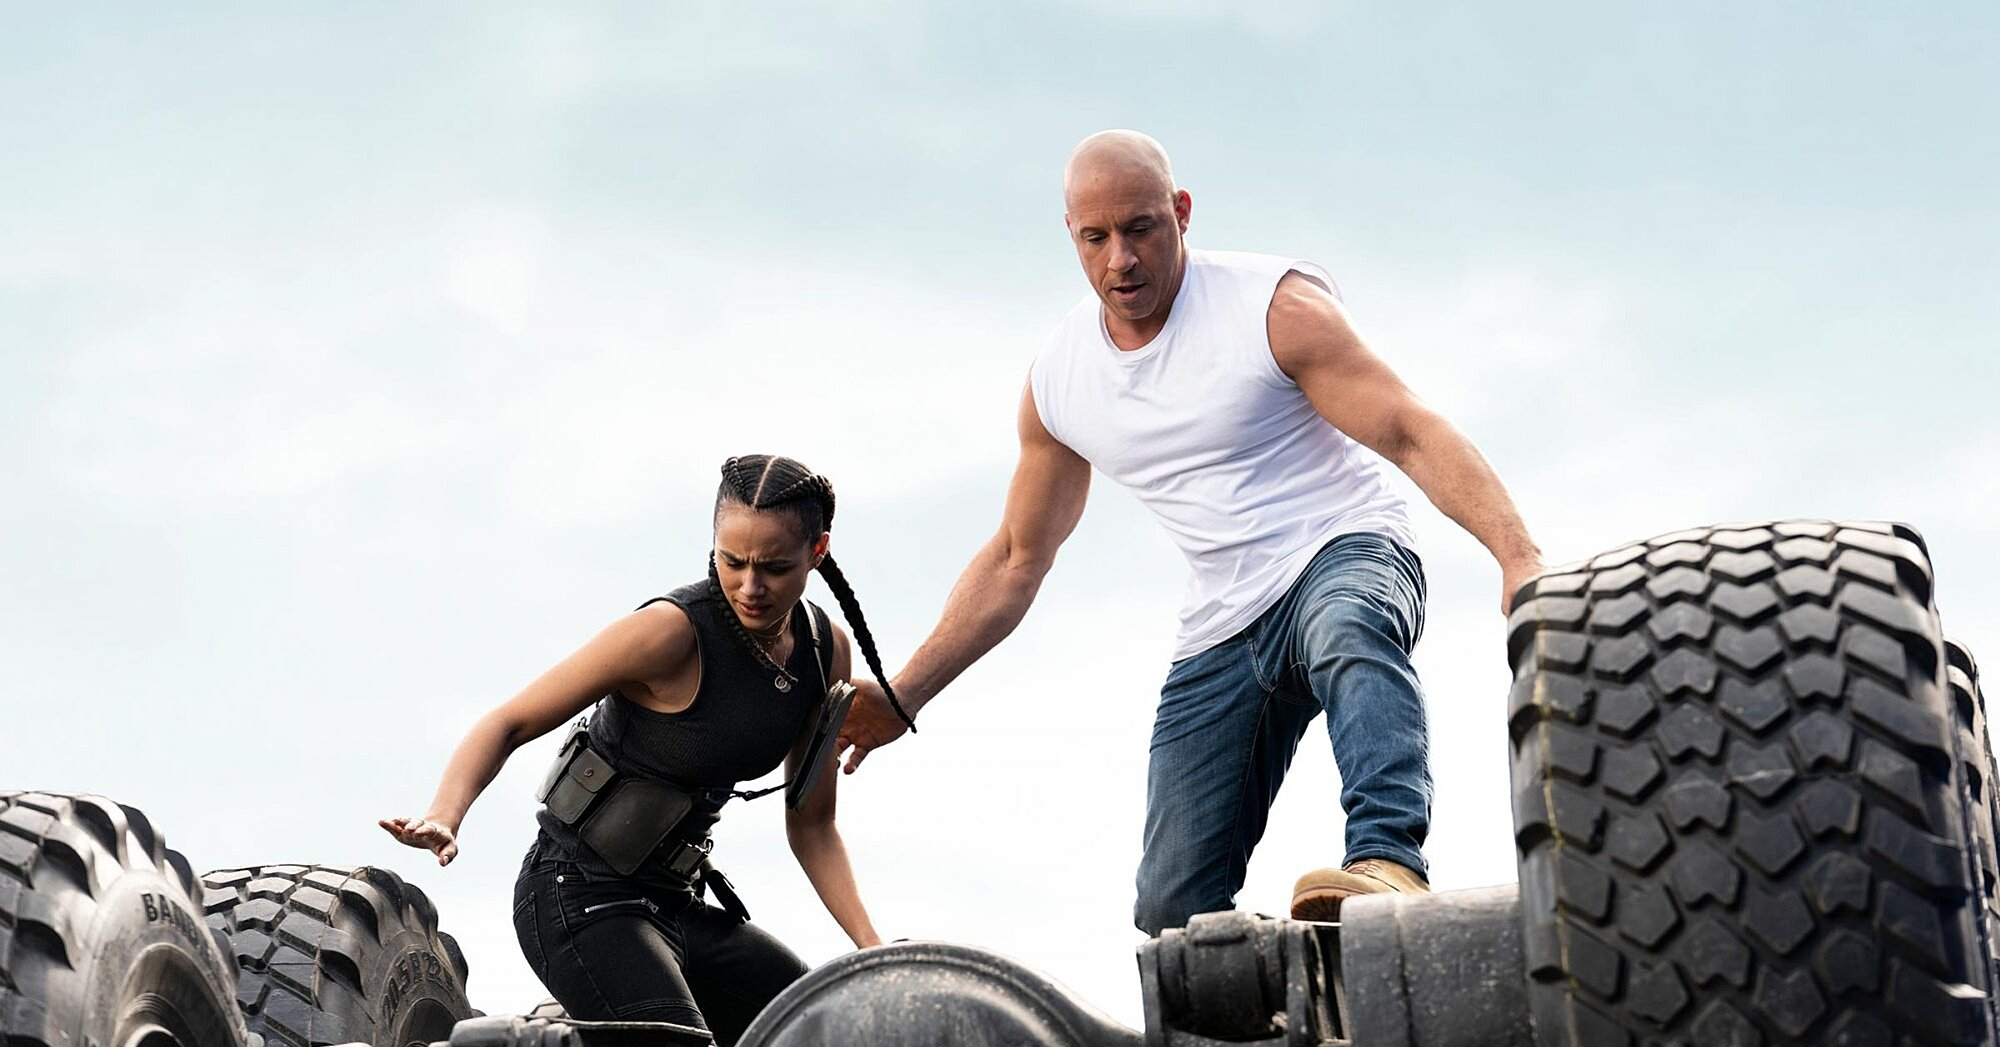 The 10 things we want to see from the final 'Fast & Furious' films